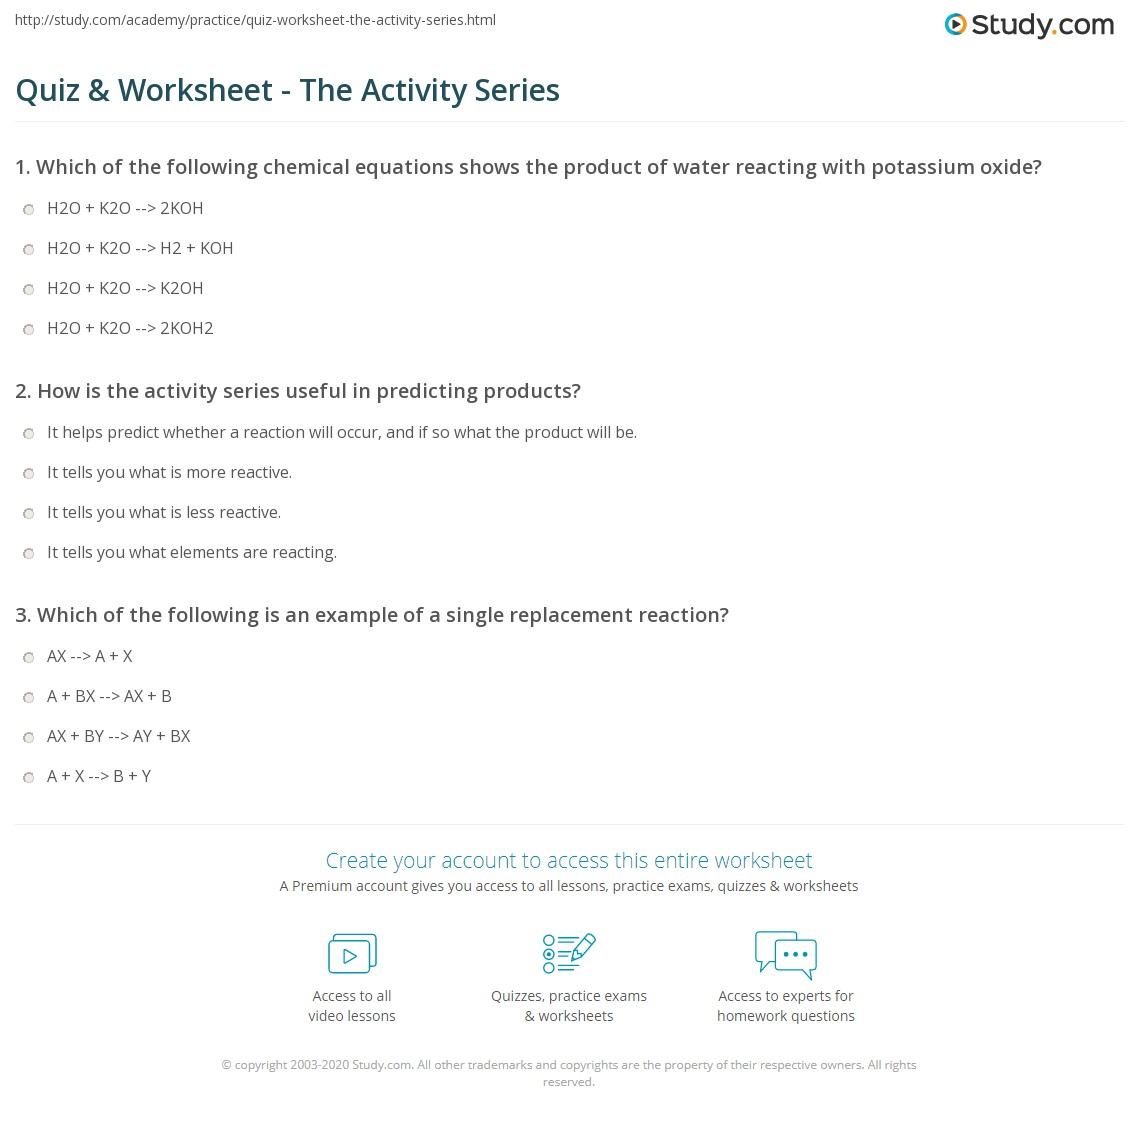 Aldiablosus  Unique Quiz Amp Worksheet  The Activity Series  Studycom With Great Print The Activity Series Predicting Products Of Single Displacement Reactions Worksheet With Cool Area And Perimeter Of Polygons Worksheets Also Free Worksheets For First Graders In Addition Triangle Missing Angle Worksheet And Free Division Worksheet As Well As Setting Fitness Goals Worksheet Additionally Worksheets On Algebraic Expressions From Studycom With Aldiablosus  Great Quiz Amp Worksheet  The Activity Series  Studycom With Cool Print The Activity Series Predicting Products Of Single Displacement Reactions Worksheet And Unique Area And Perimeter Of Polygons Worksheets Also Free Worksheets For First Graders In Addition Triangle Missing Angle Worksheet From Studycom